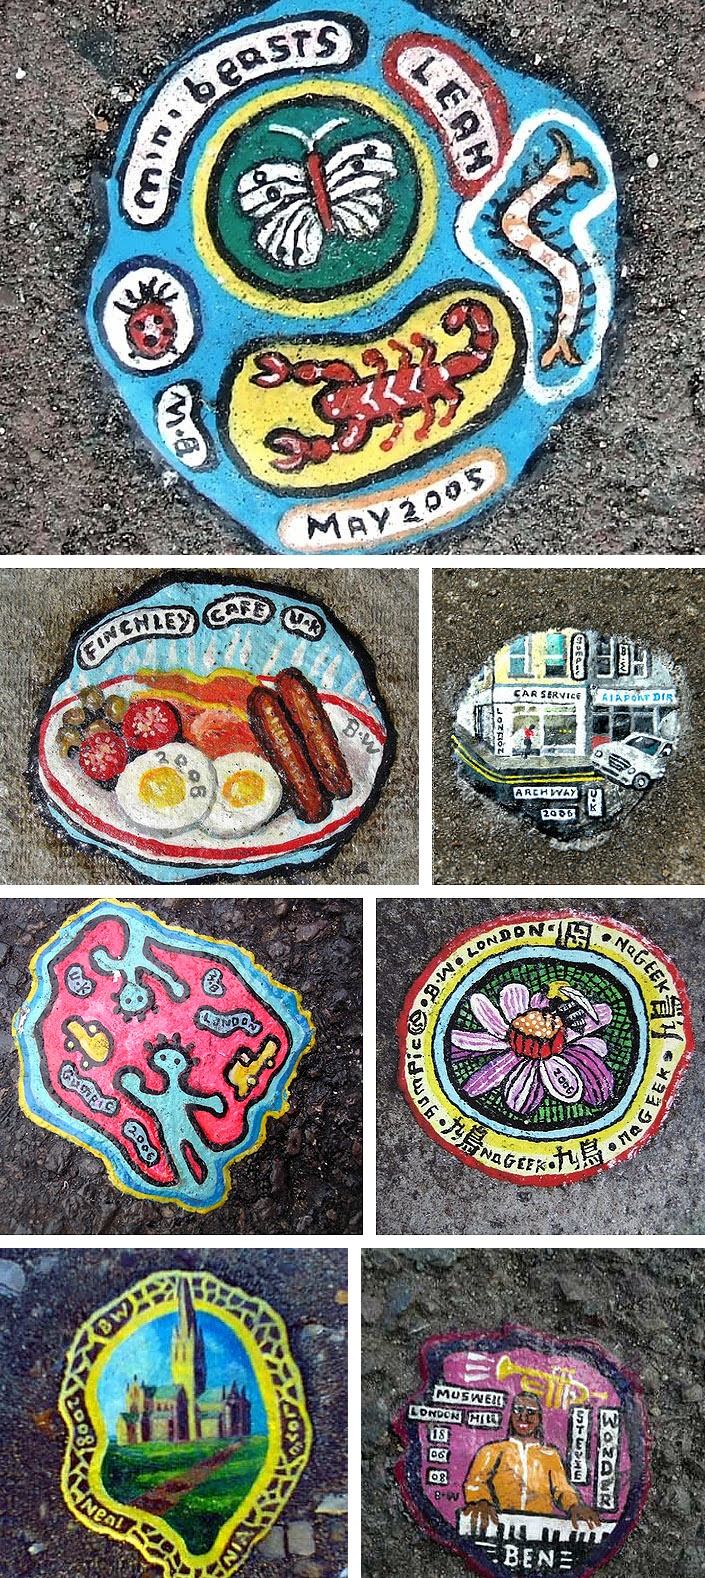 London, North: A selection of pavement chewing gum art by Ben Wilson. http://restreet.altervista.org/ben-wilson-dipinge-sulle-gomme-da-masticare/